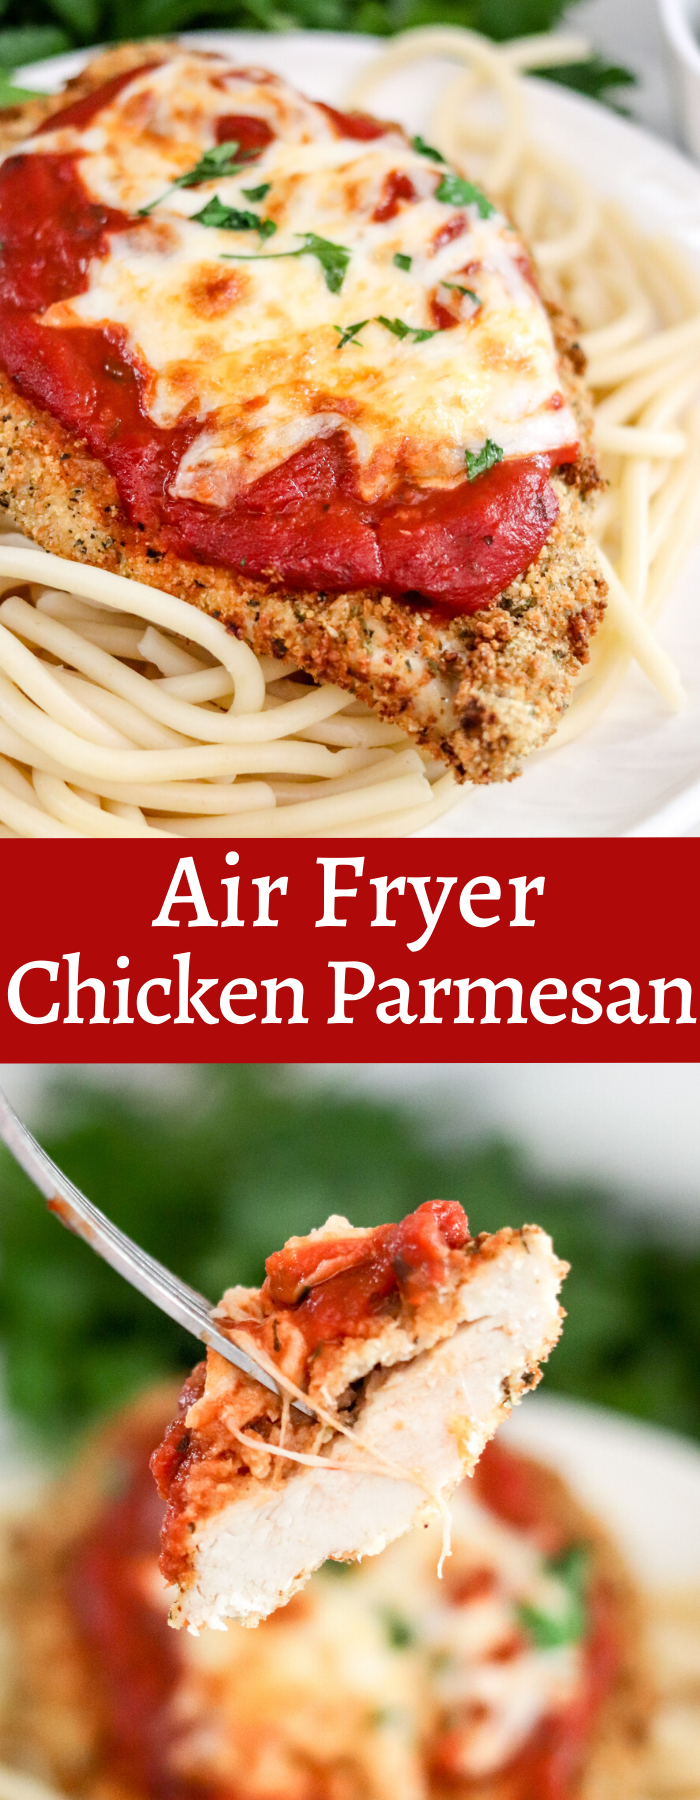 Air Fryer Chicken Parmesan is much healthier than the fried version. This meal is done in less than 15 minutes, and the chicken is moist and full of flavor!